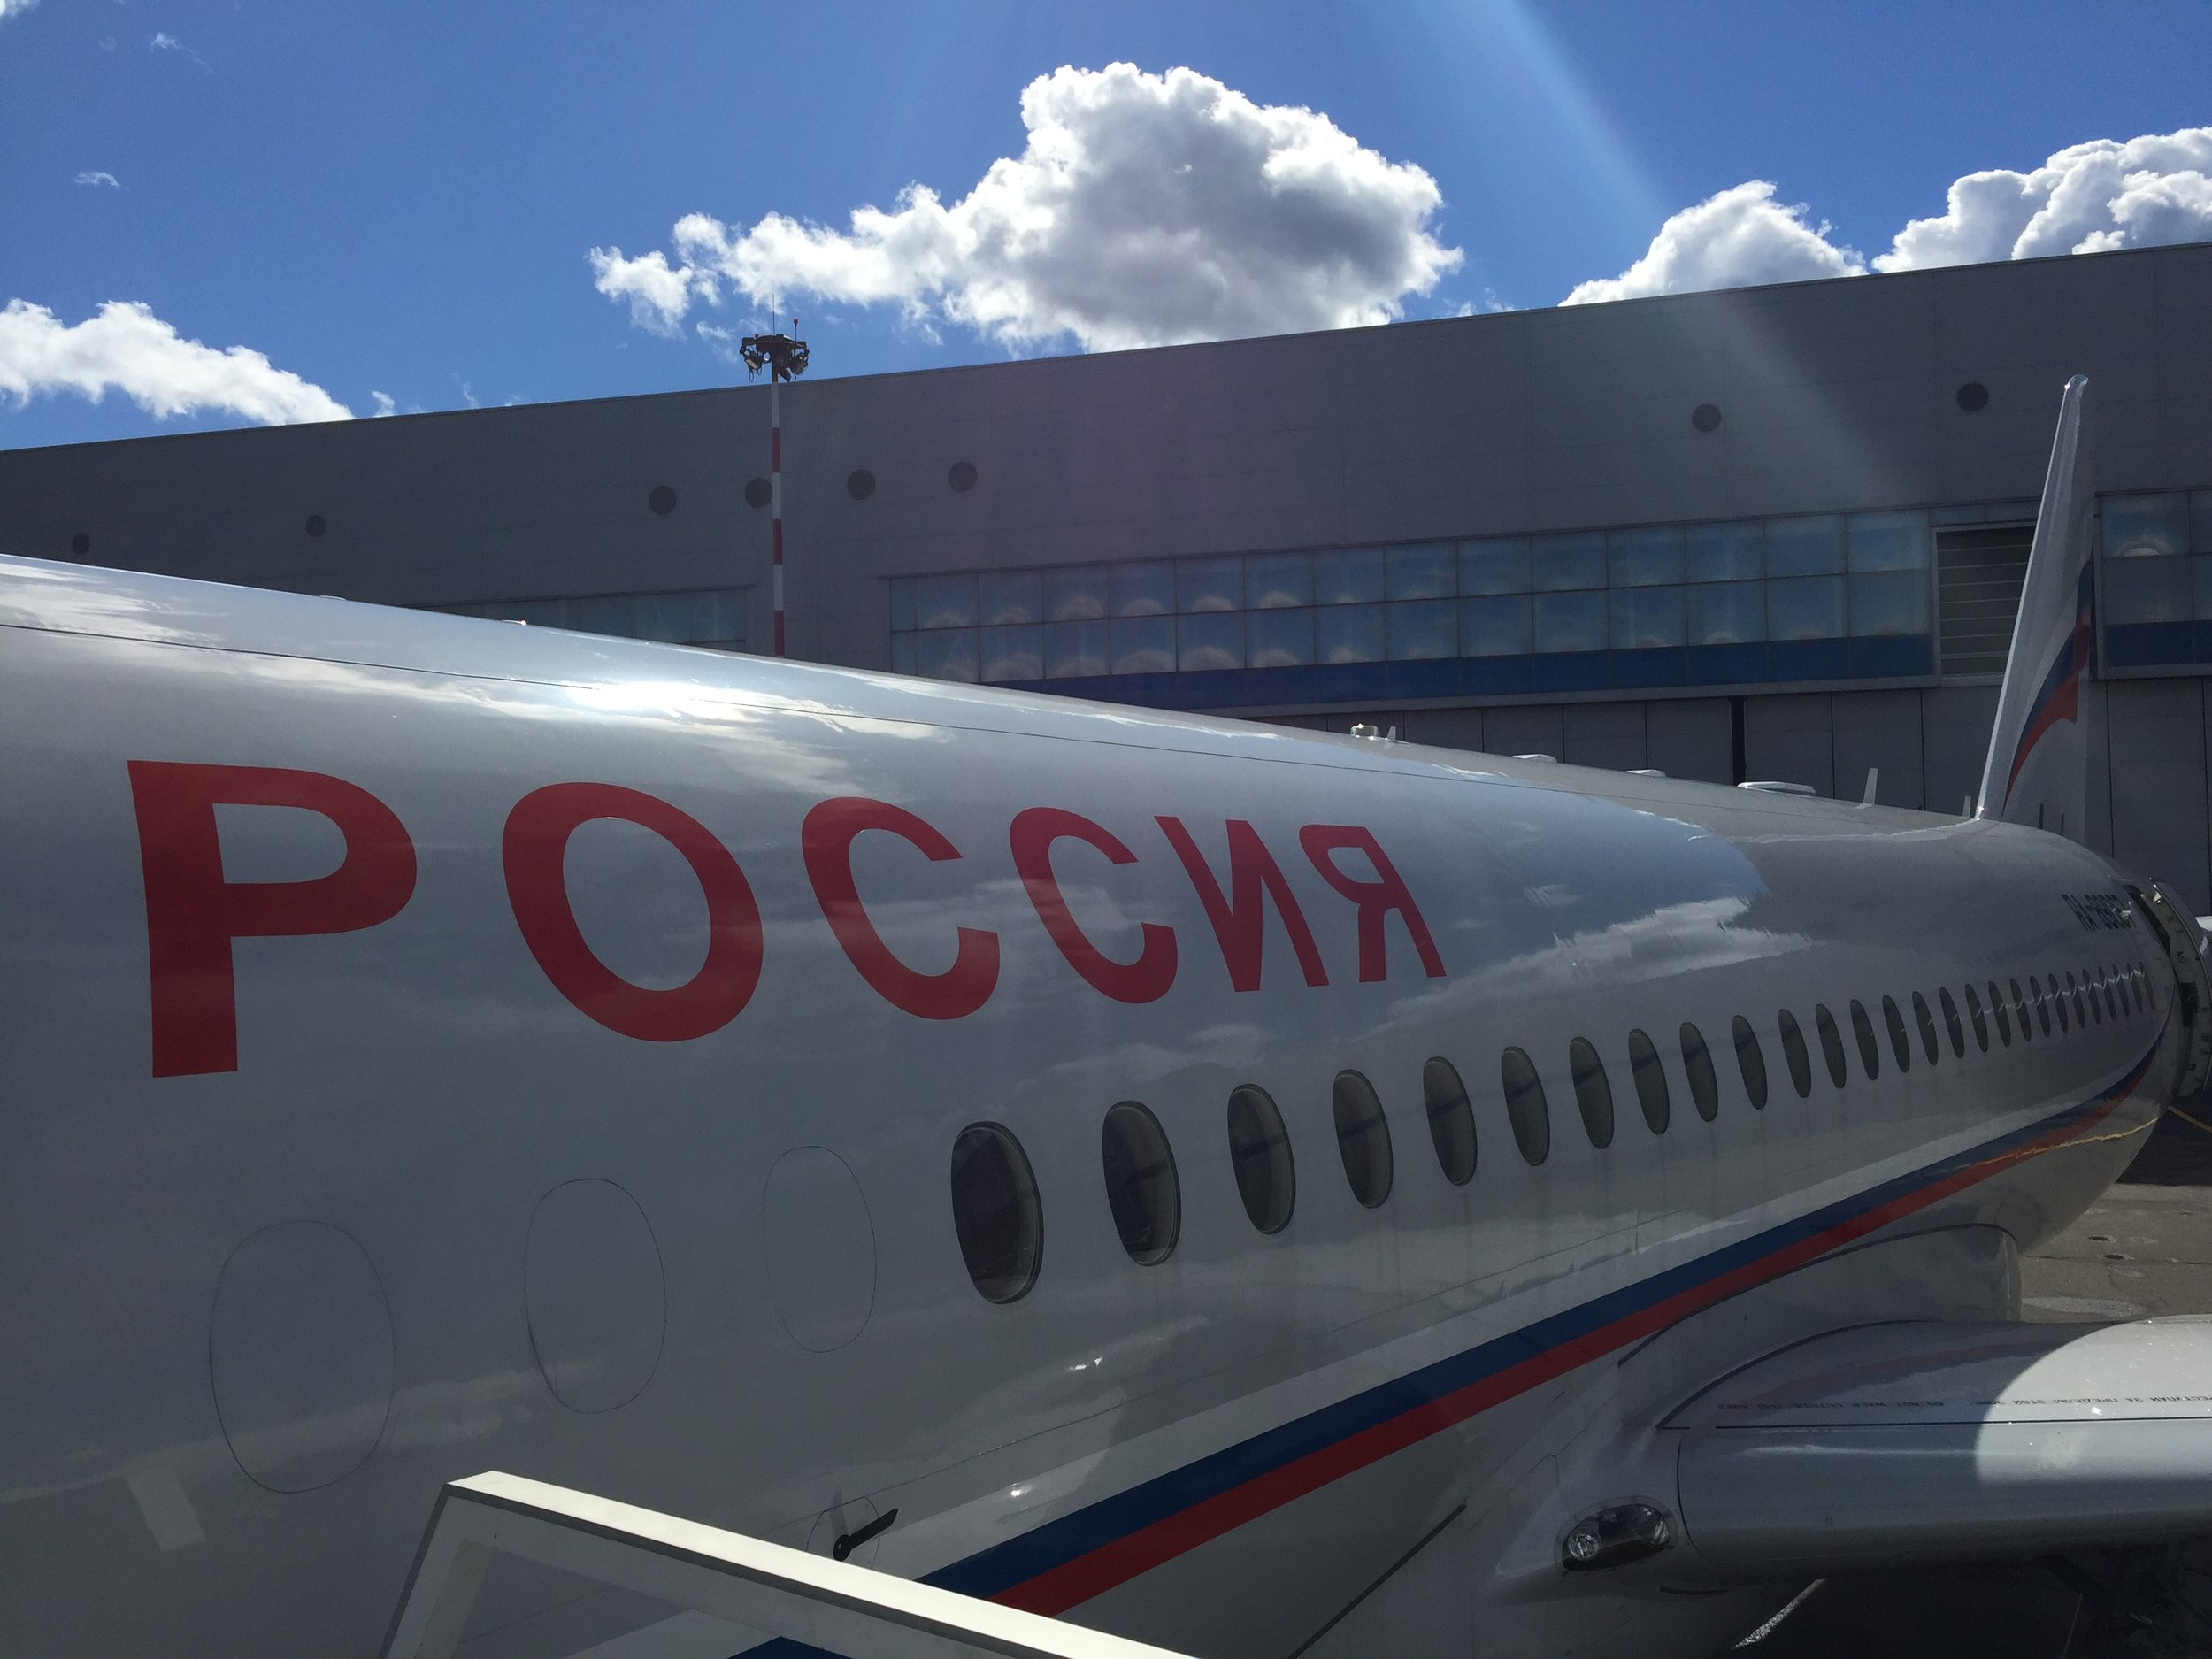 The Superjet from another angle...and the Sun that started to shine after a rainy morning!